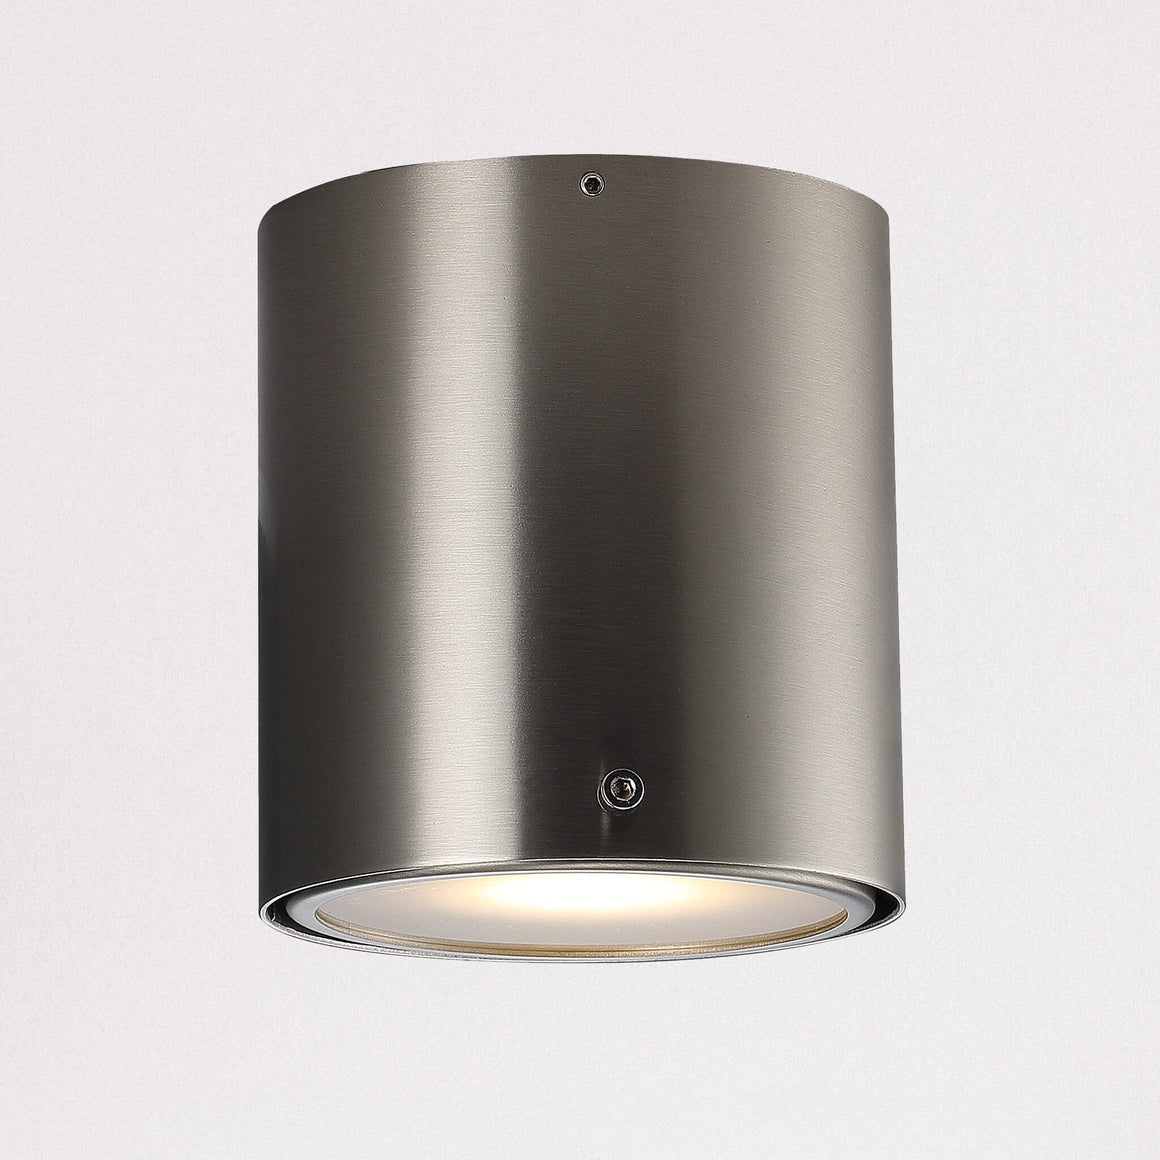 Bathroom Surface Mounted Downlight - Brushed Steel